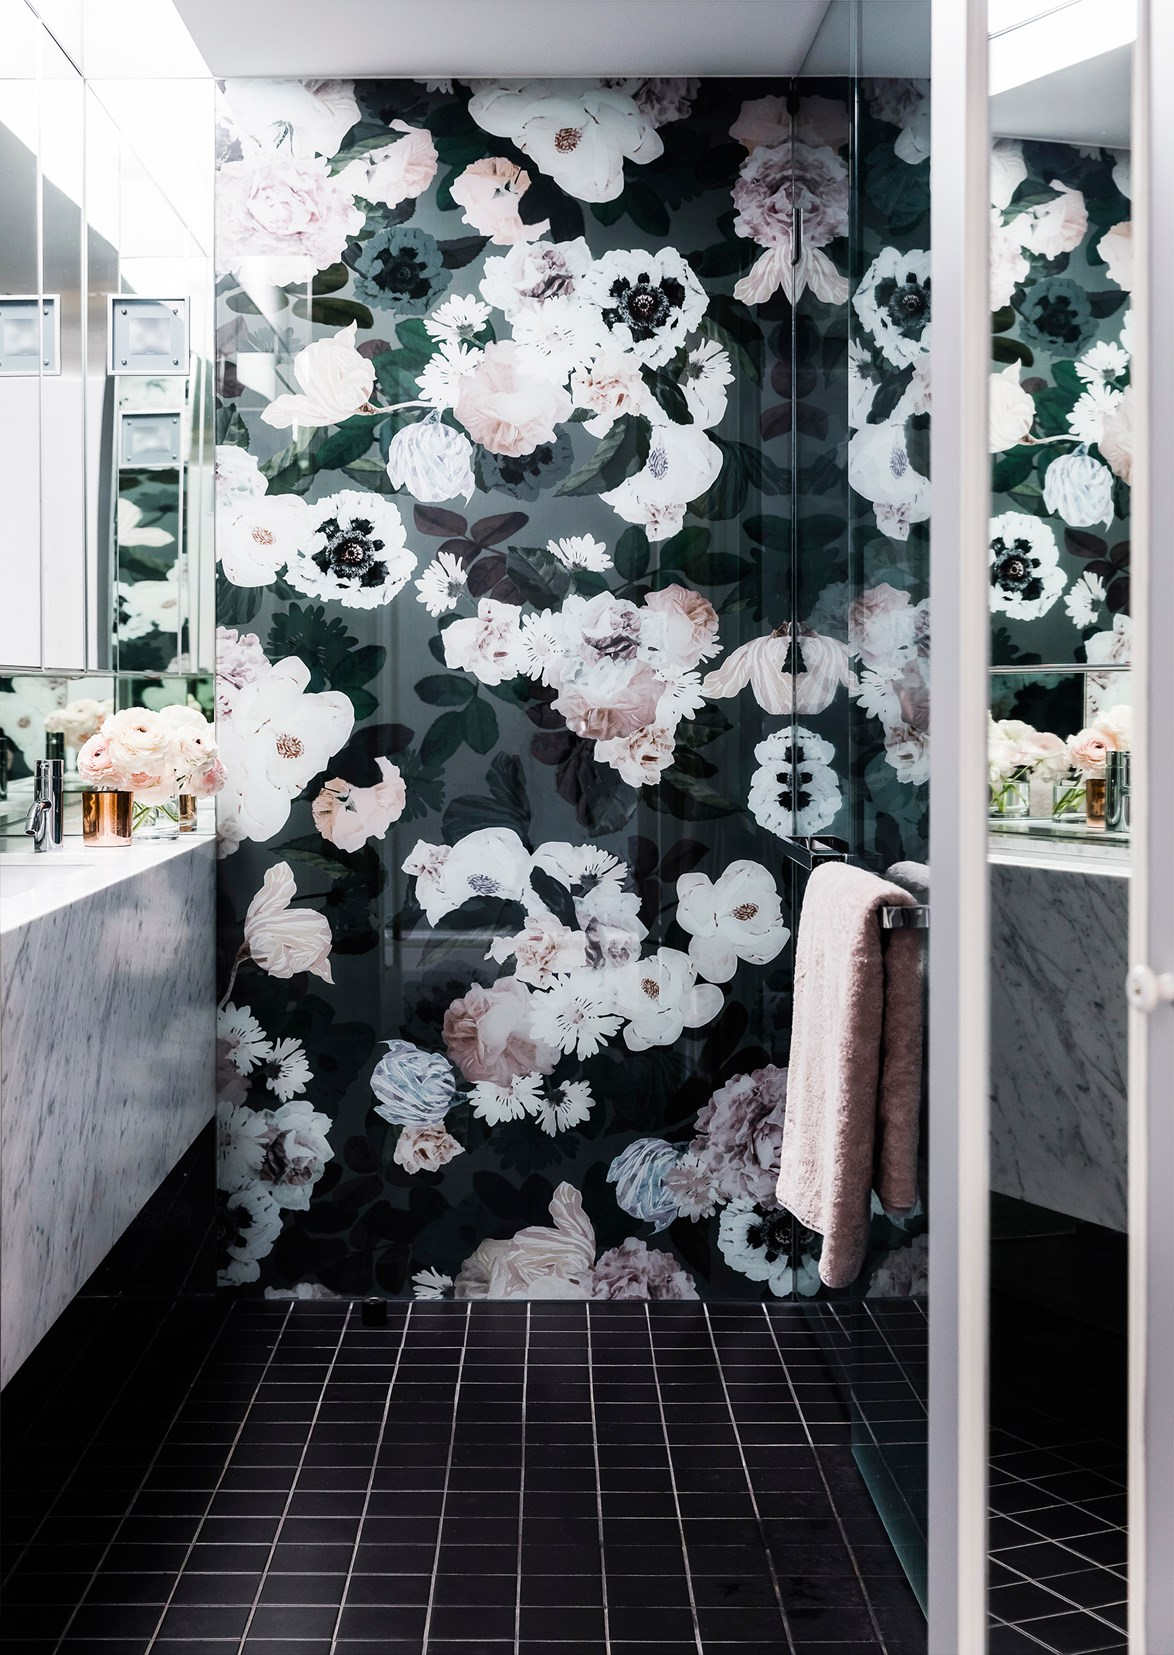 Although not technically wallpaper, this 'wallpaper-inspired' printed glass feature in a Sydney florist's home is an excellent innovation, creating a functional, water-proof focal-point fit for a luxurious bathroom.